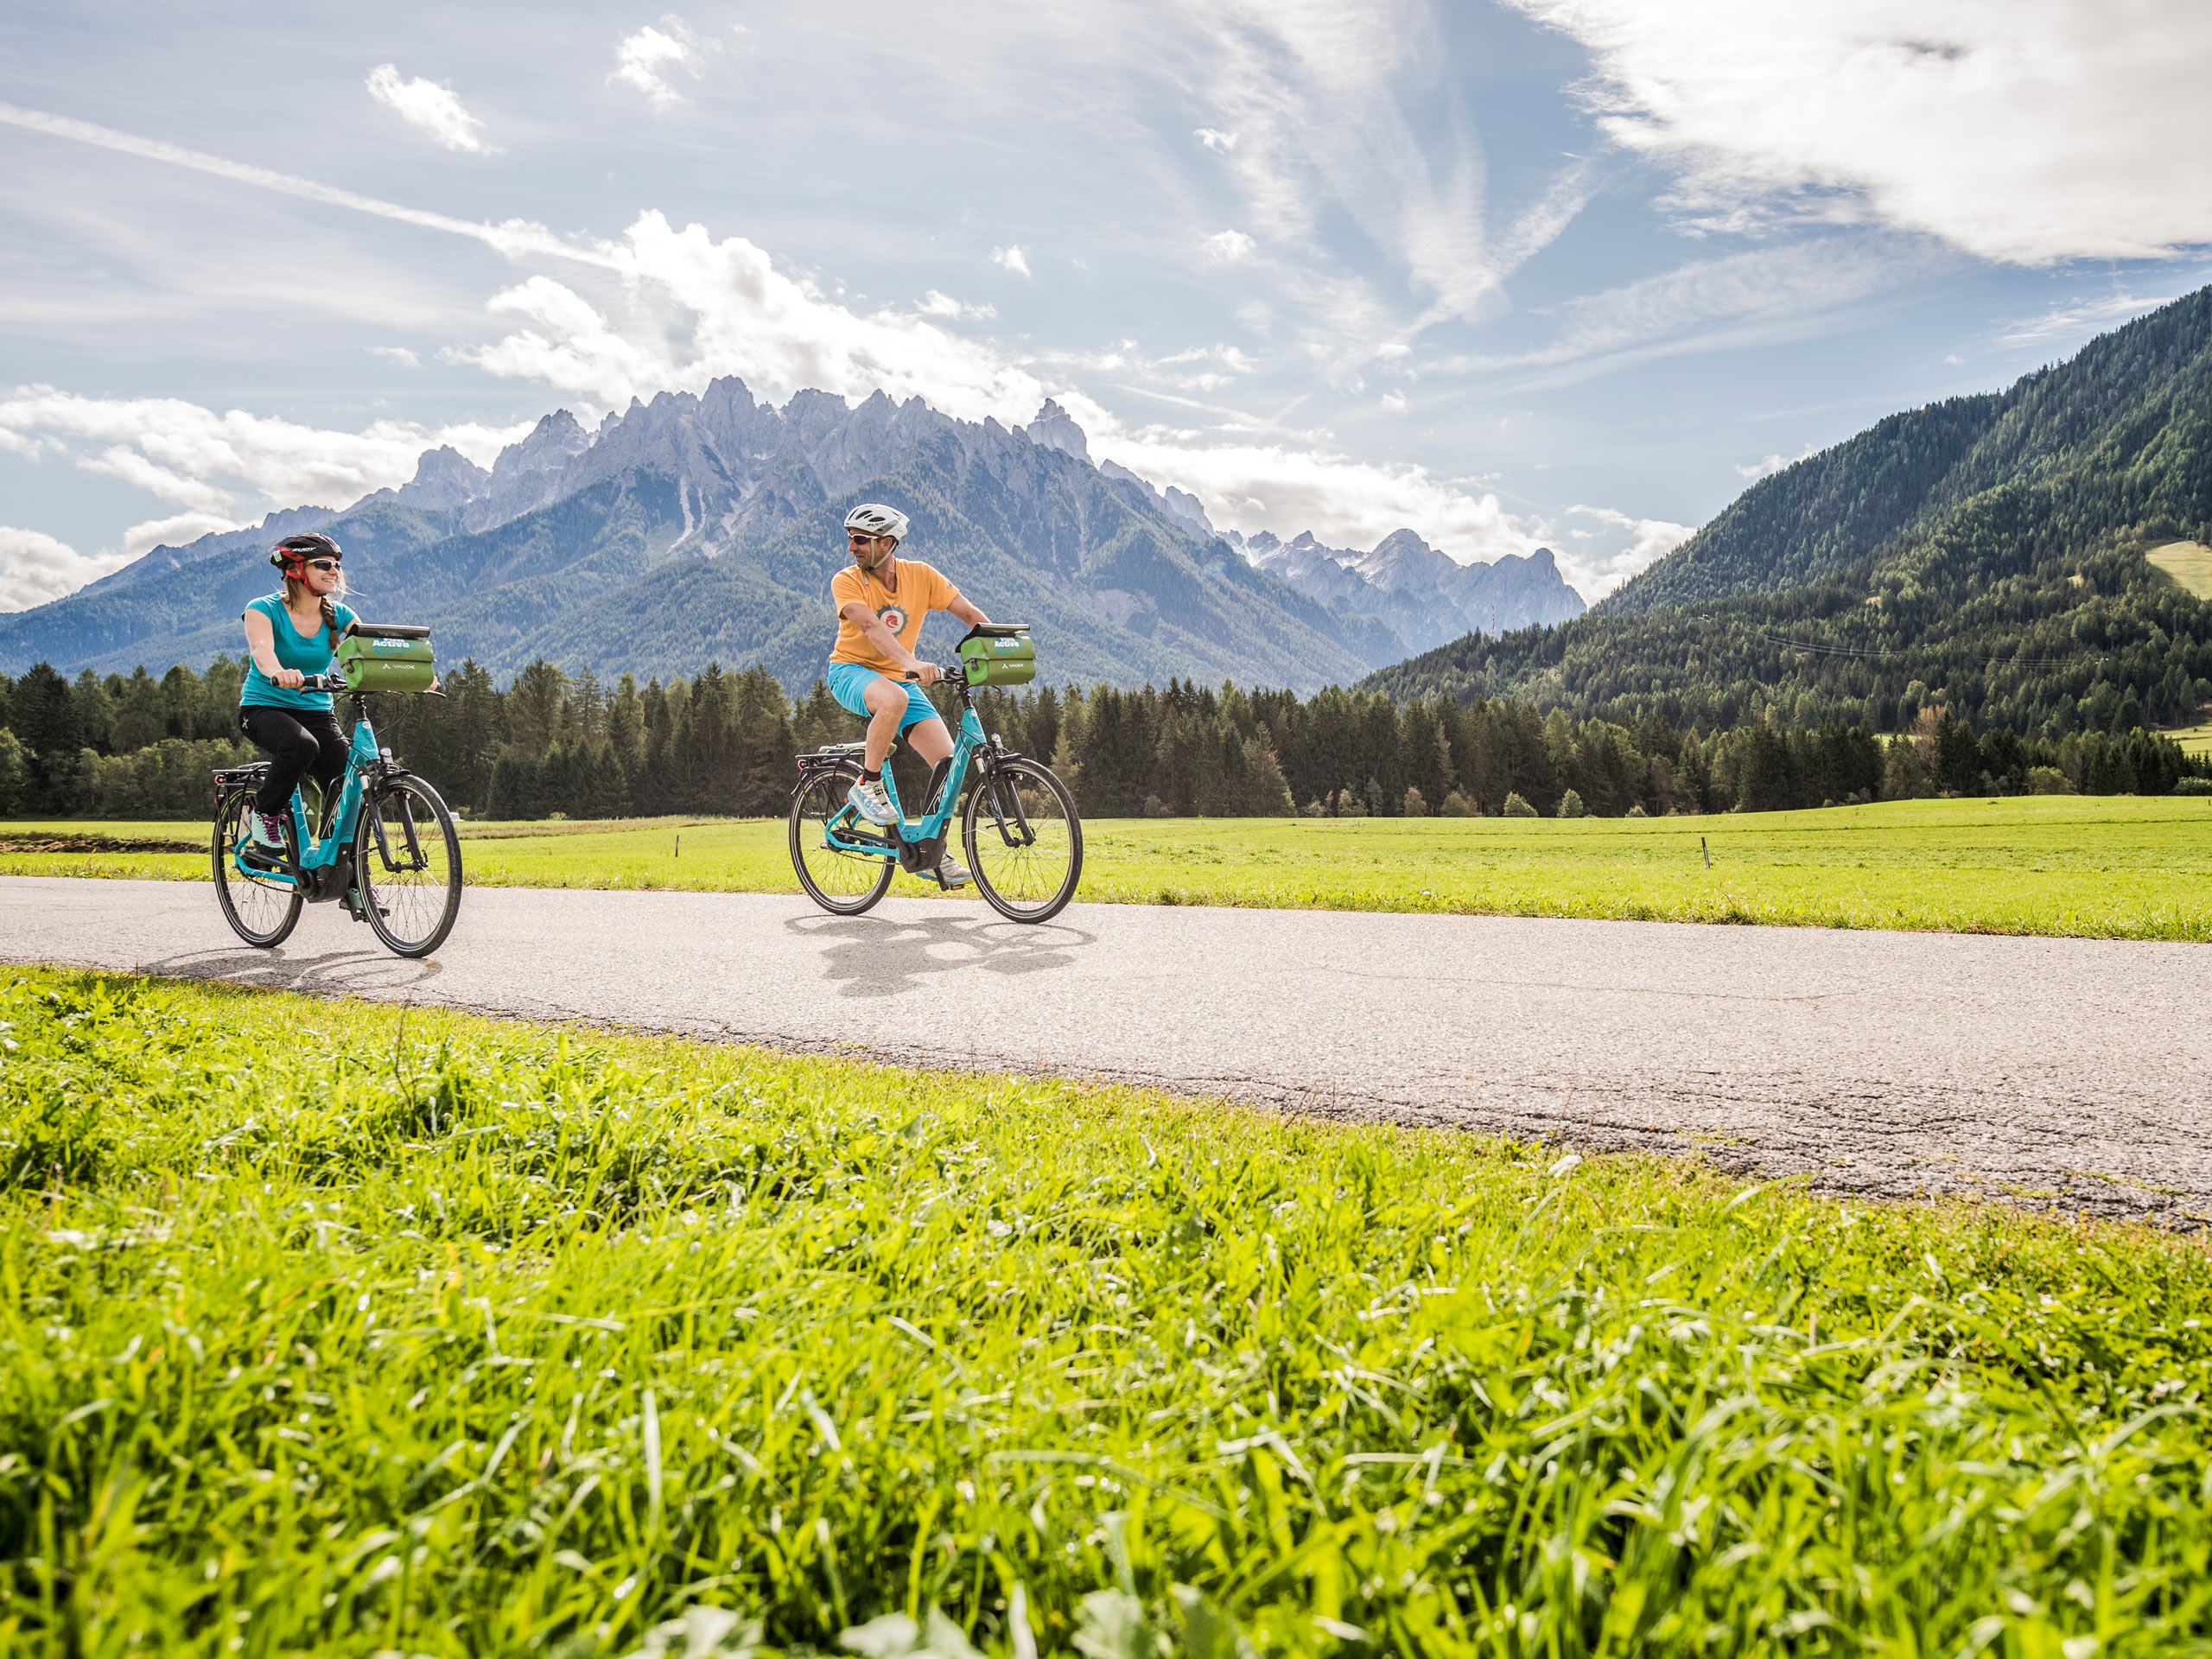 Cycling trail in the mountains